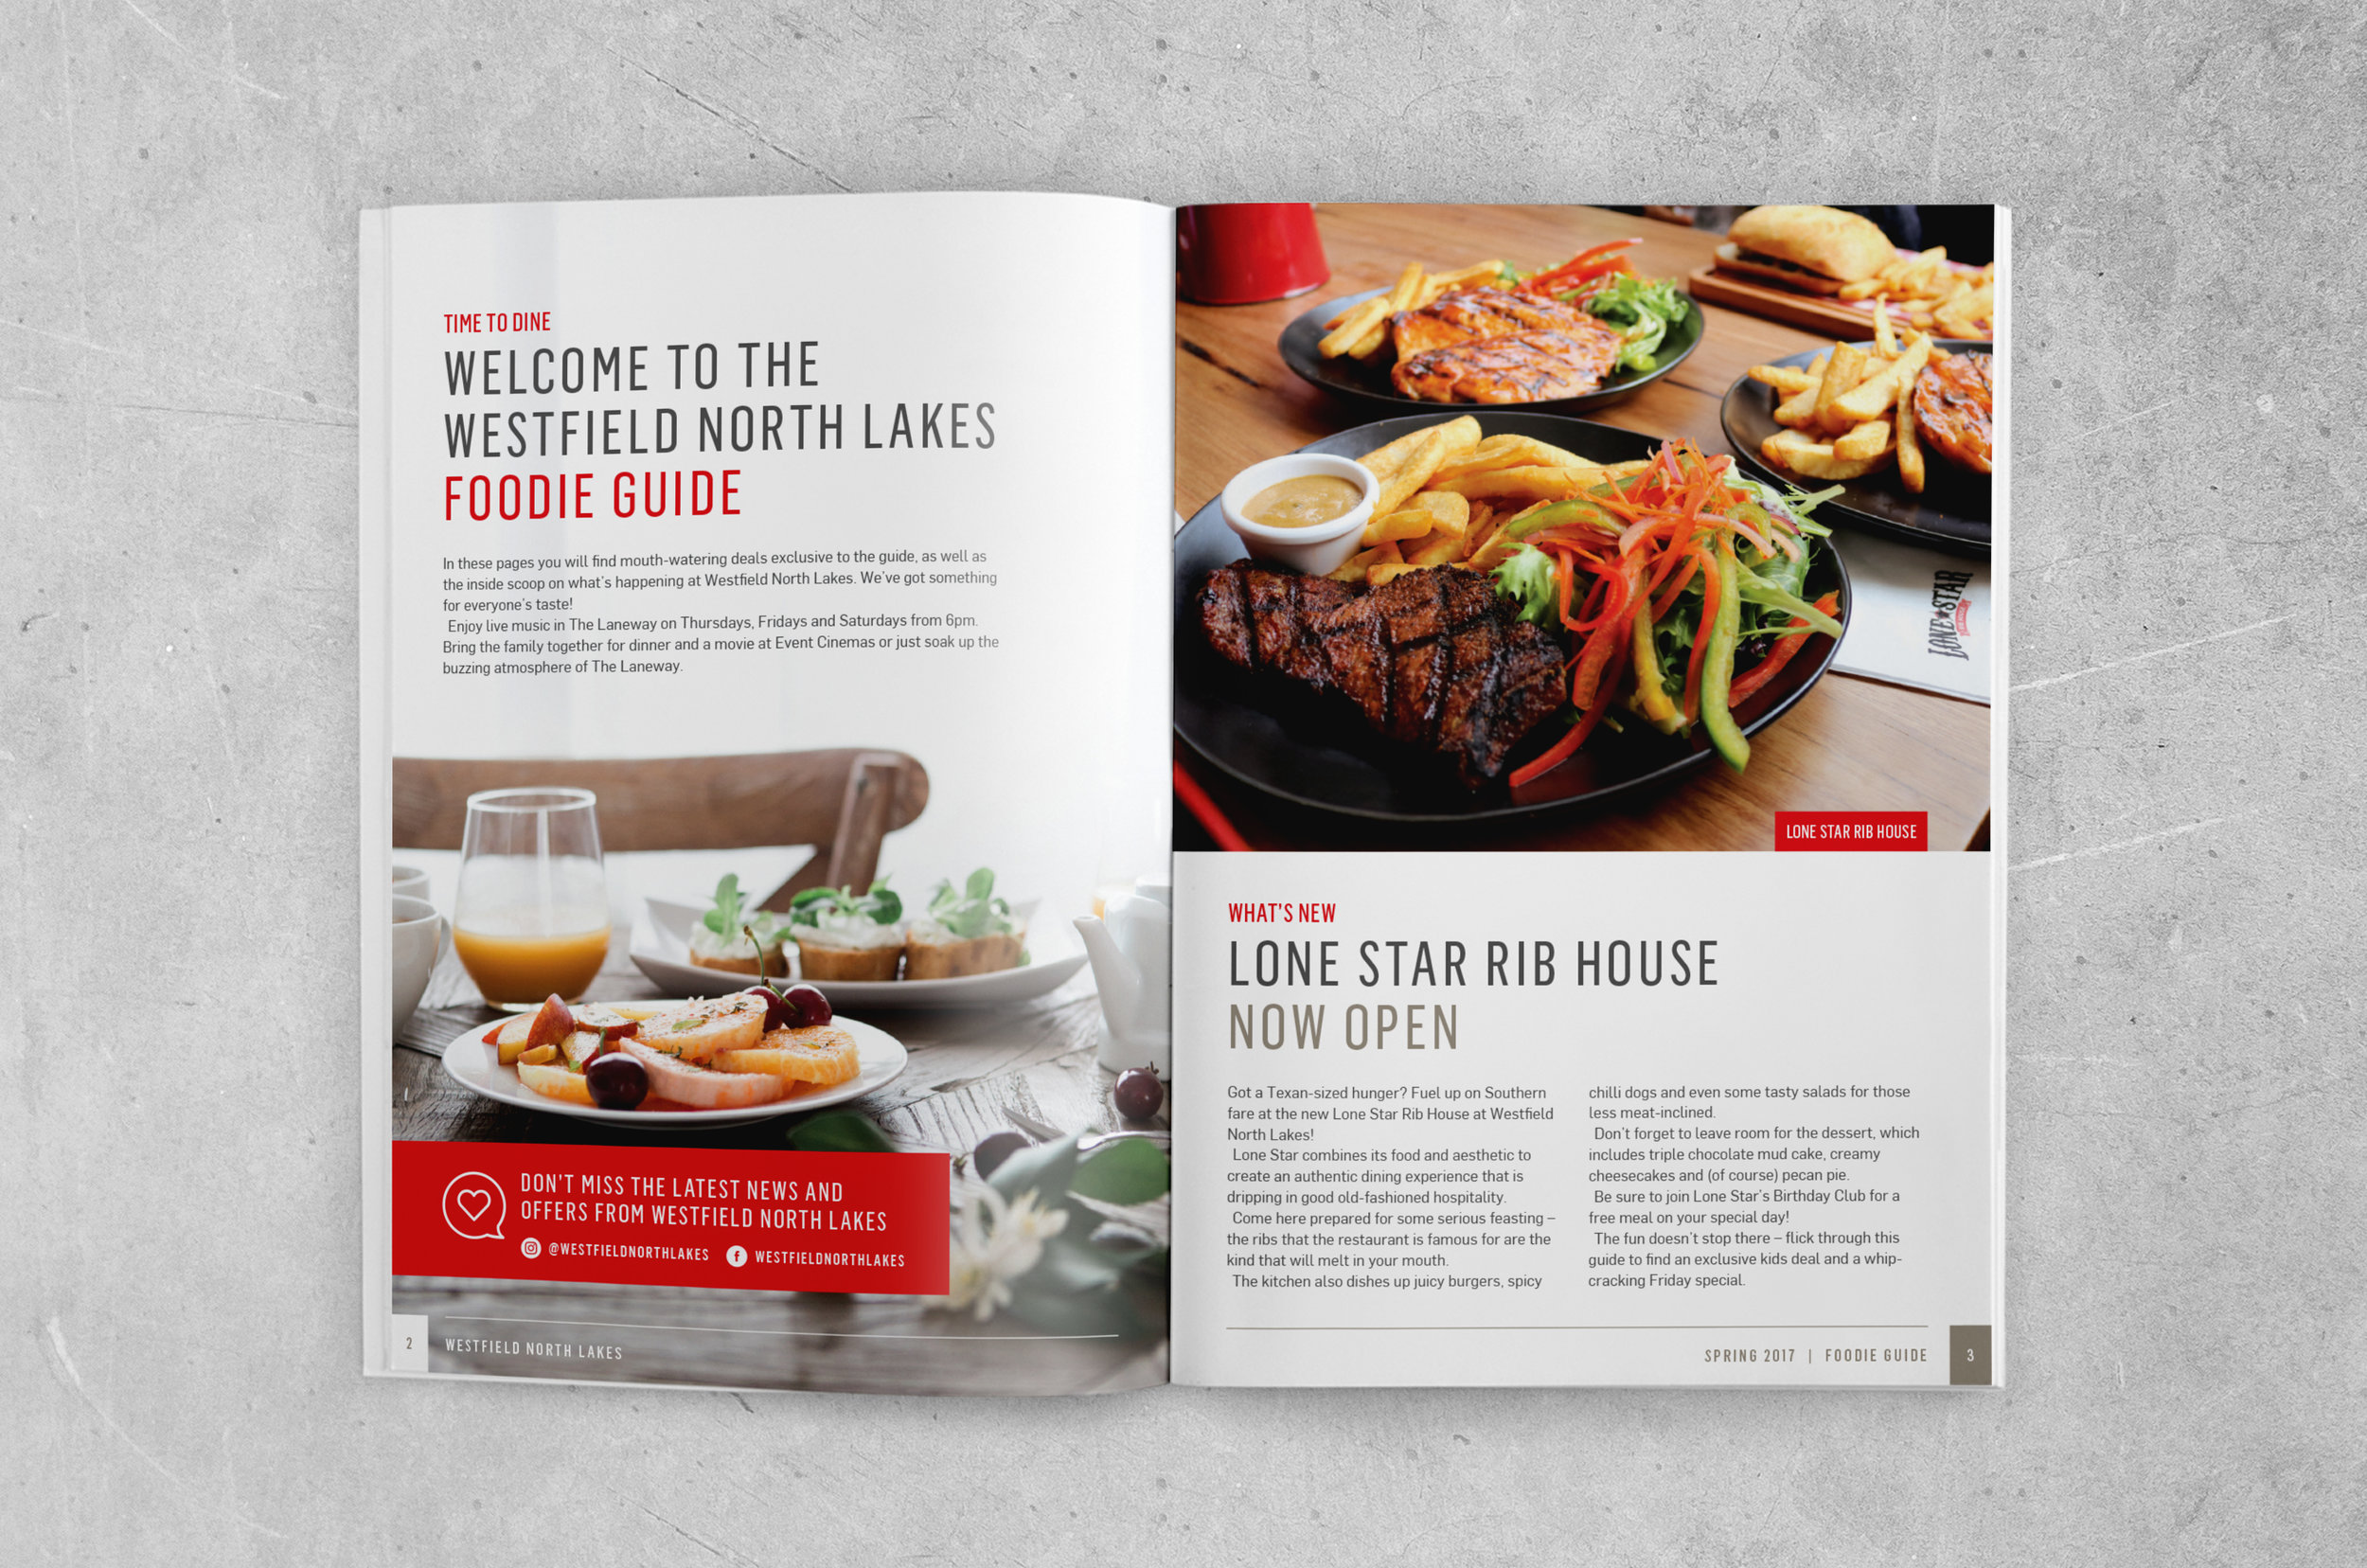 map-creative-westfield-north-lakes-dining-guide-project-rollout-2.jpg